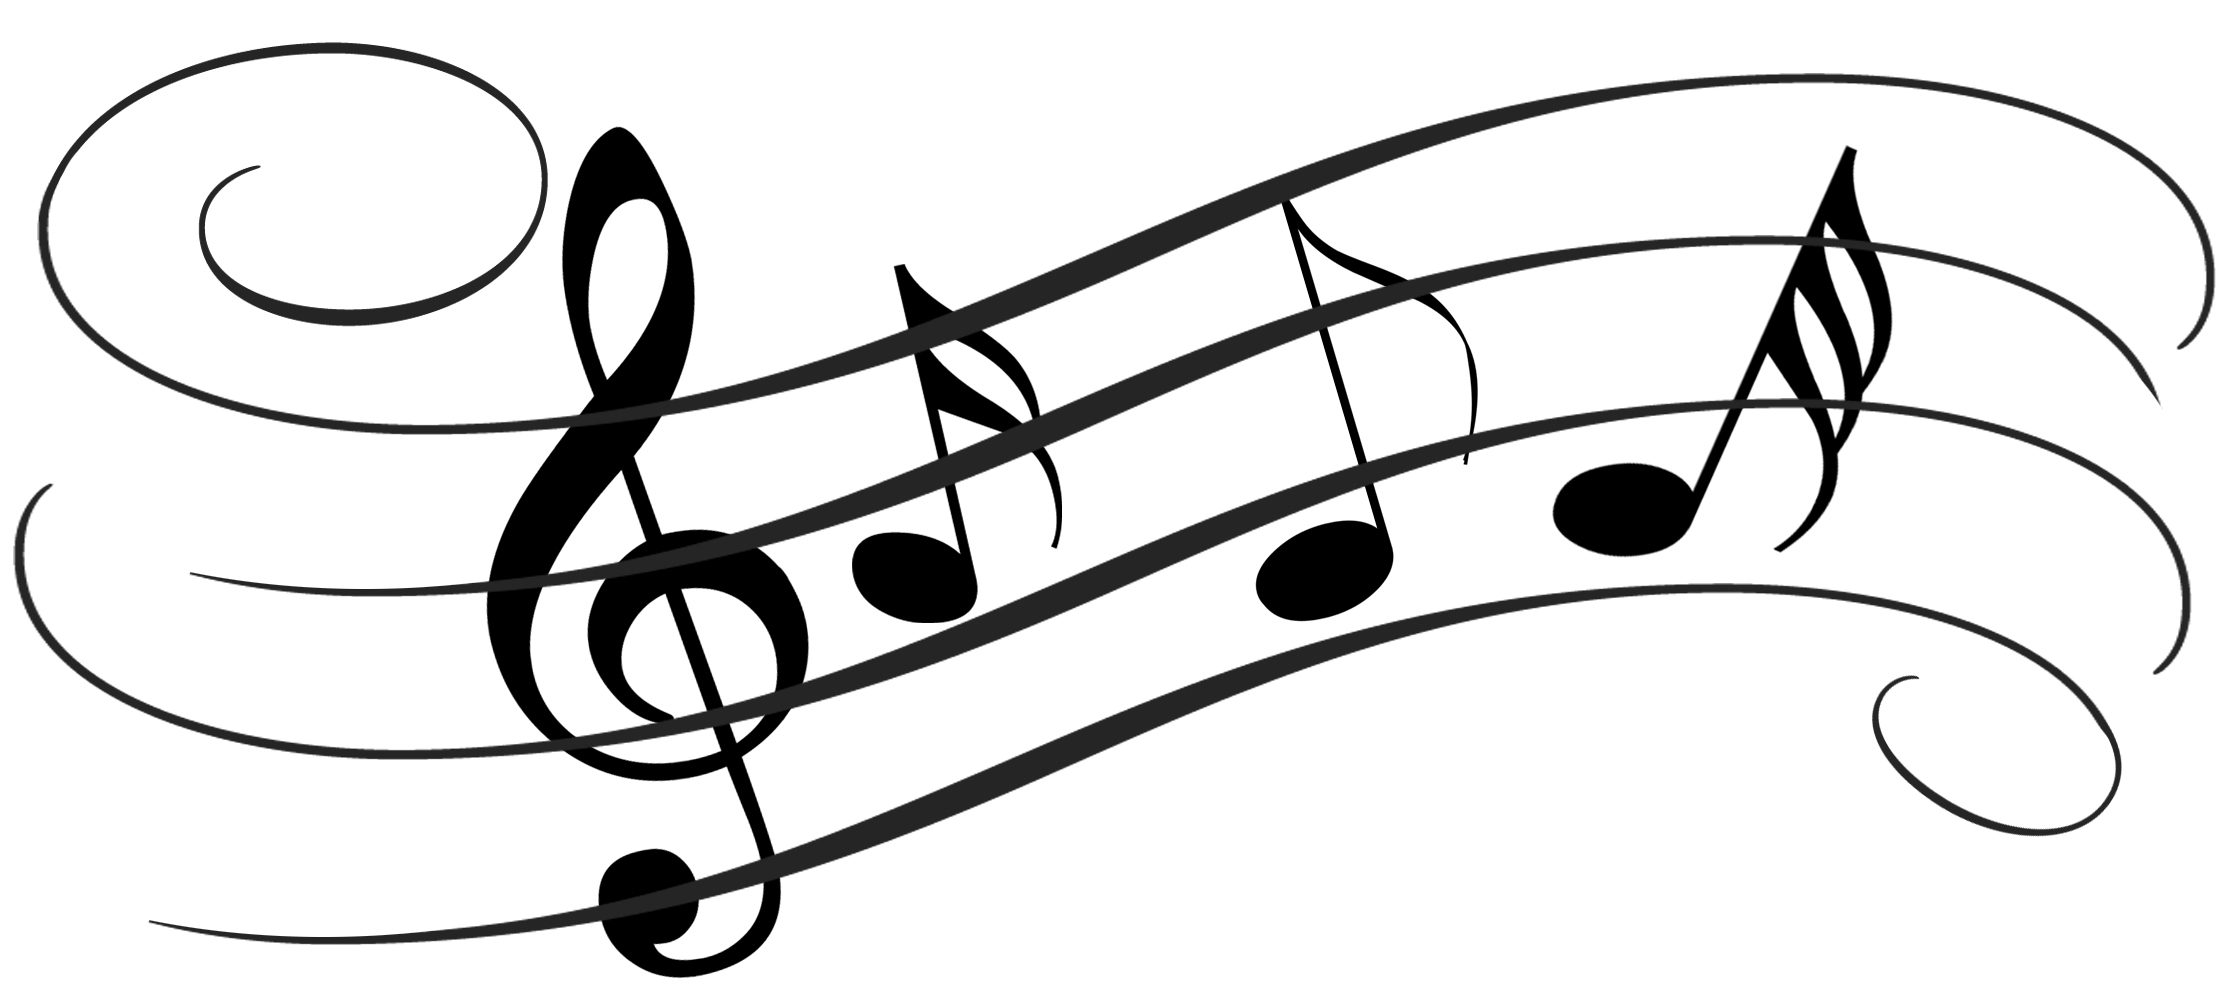 Music Notes On Staff Clipart Dt6xgz8t9